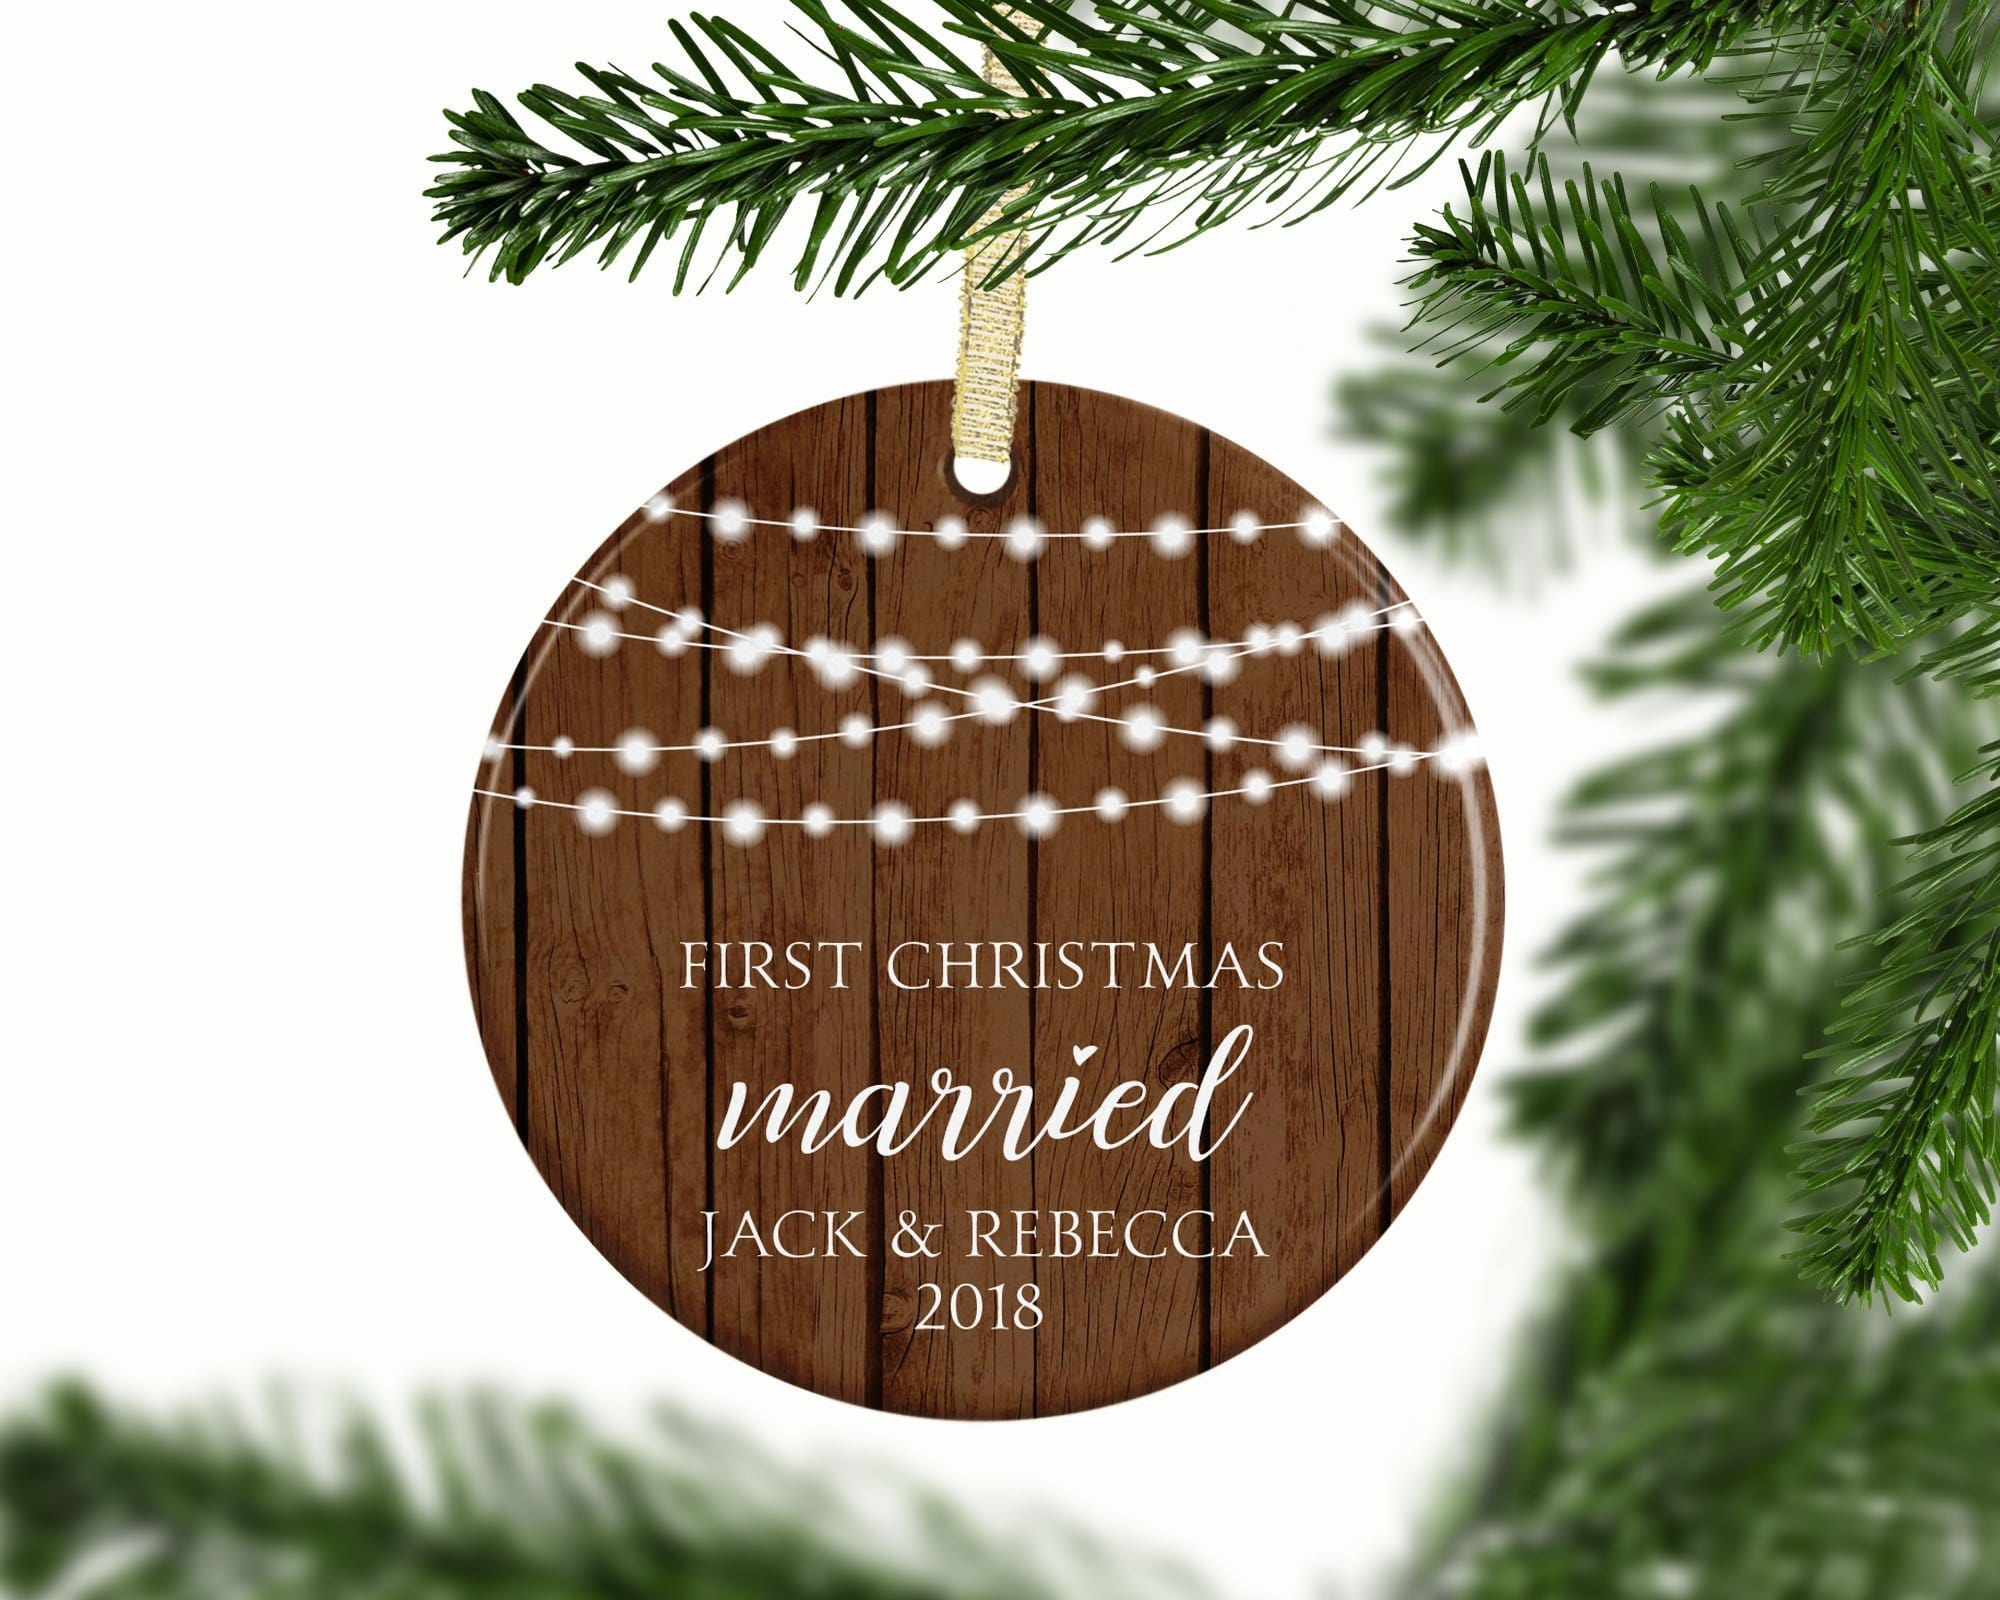 First Christmas Married Personalized Ornament | Rustic Wedding Gift Idea, Couples Ornament | FREE SHIPPING